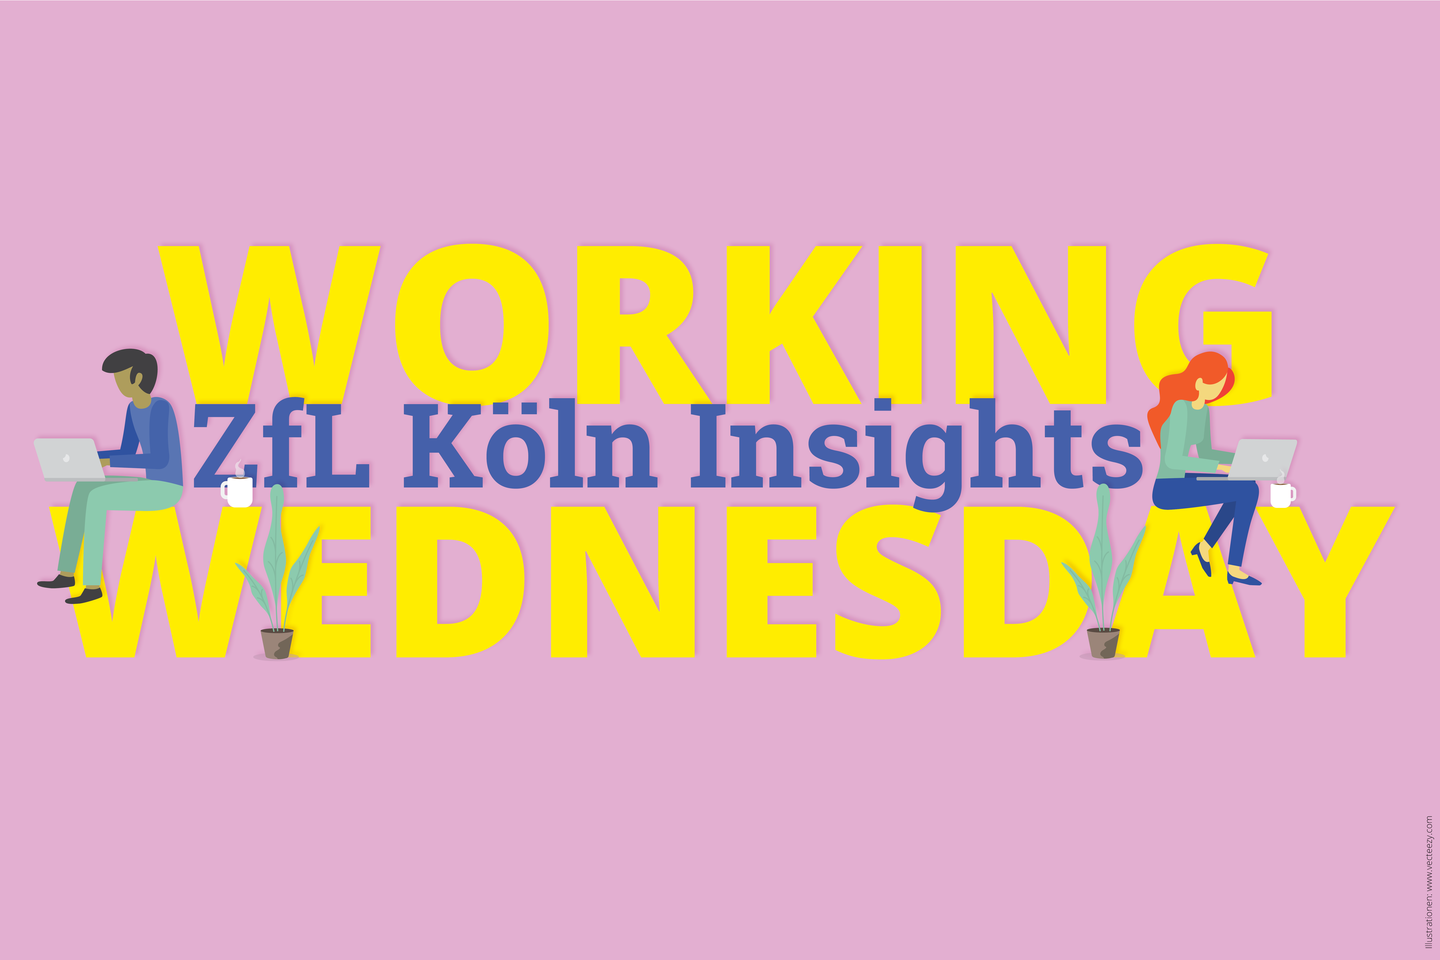 ZfL-Köln Insights Working Wednesday